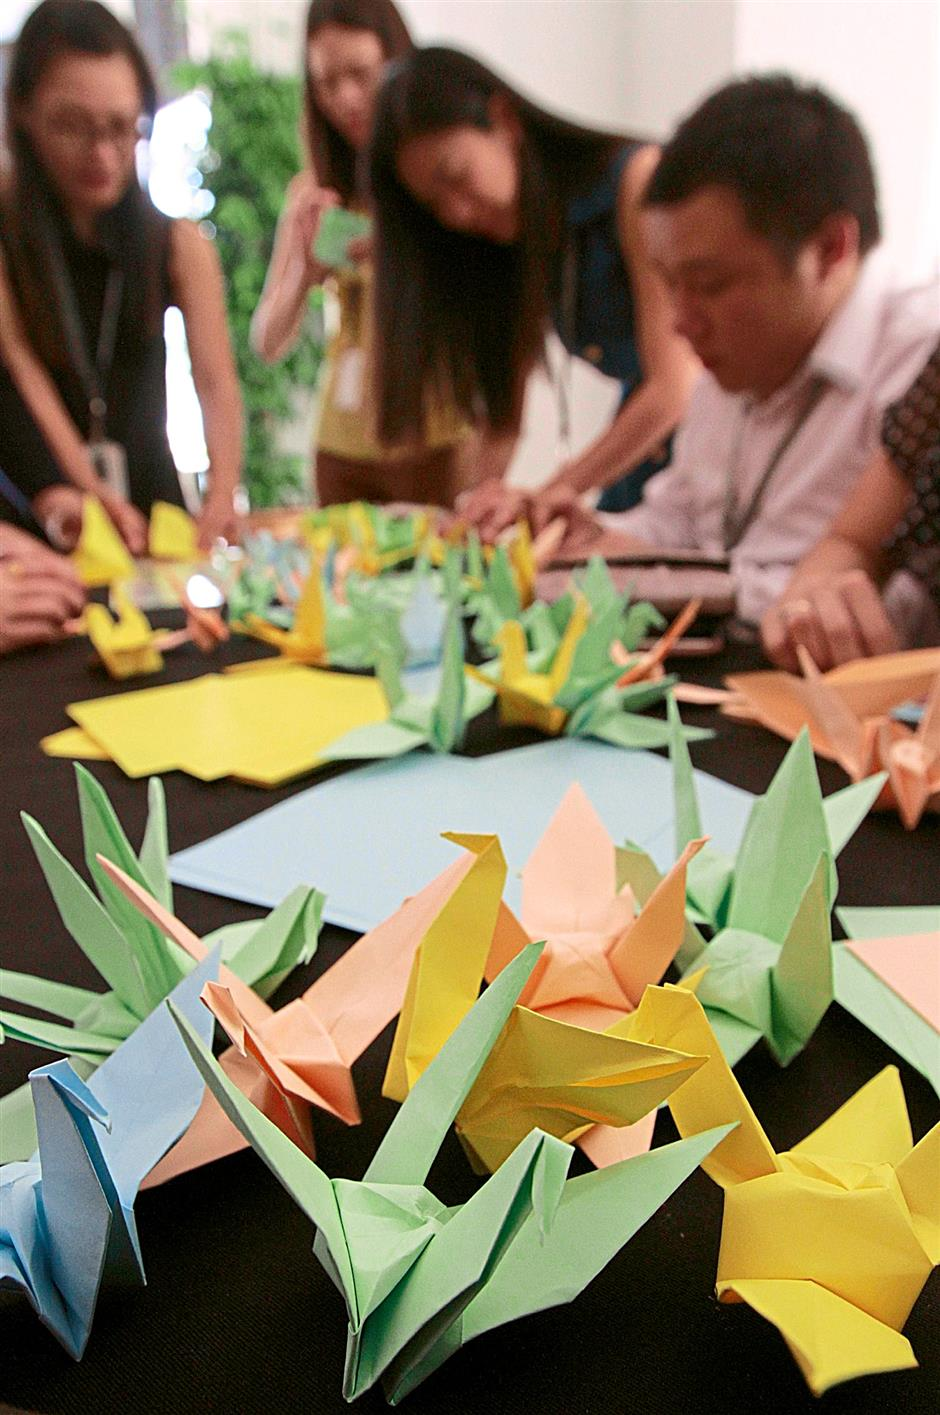 Participants of the event at Gurney Paragon Mall folding their paper cranes inscribed with messages of hope and support for the missing MH370 flight. The Star/Lim Beng Tatt/ 13 March 2014